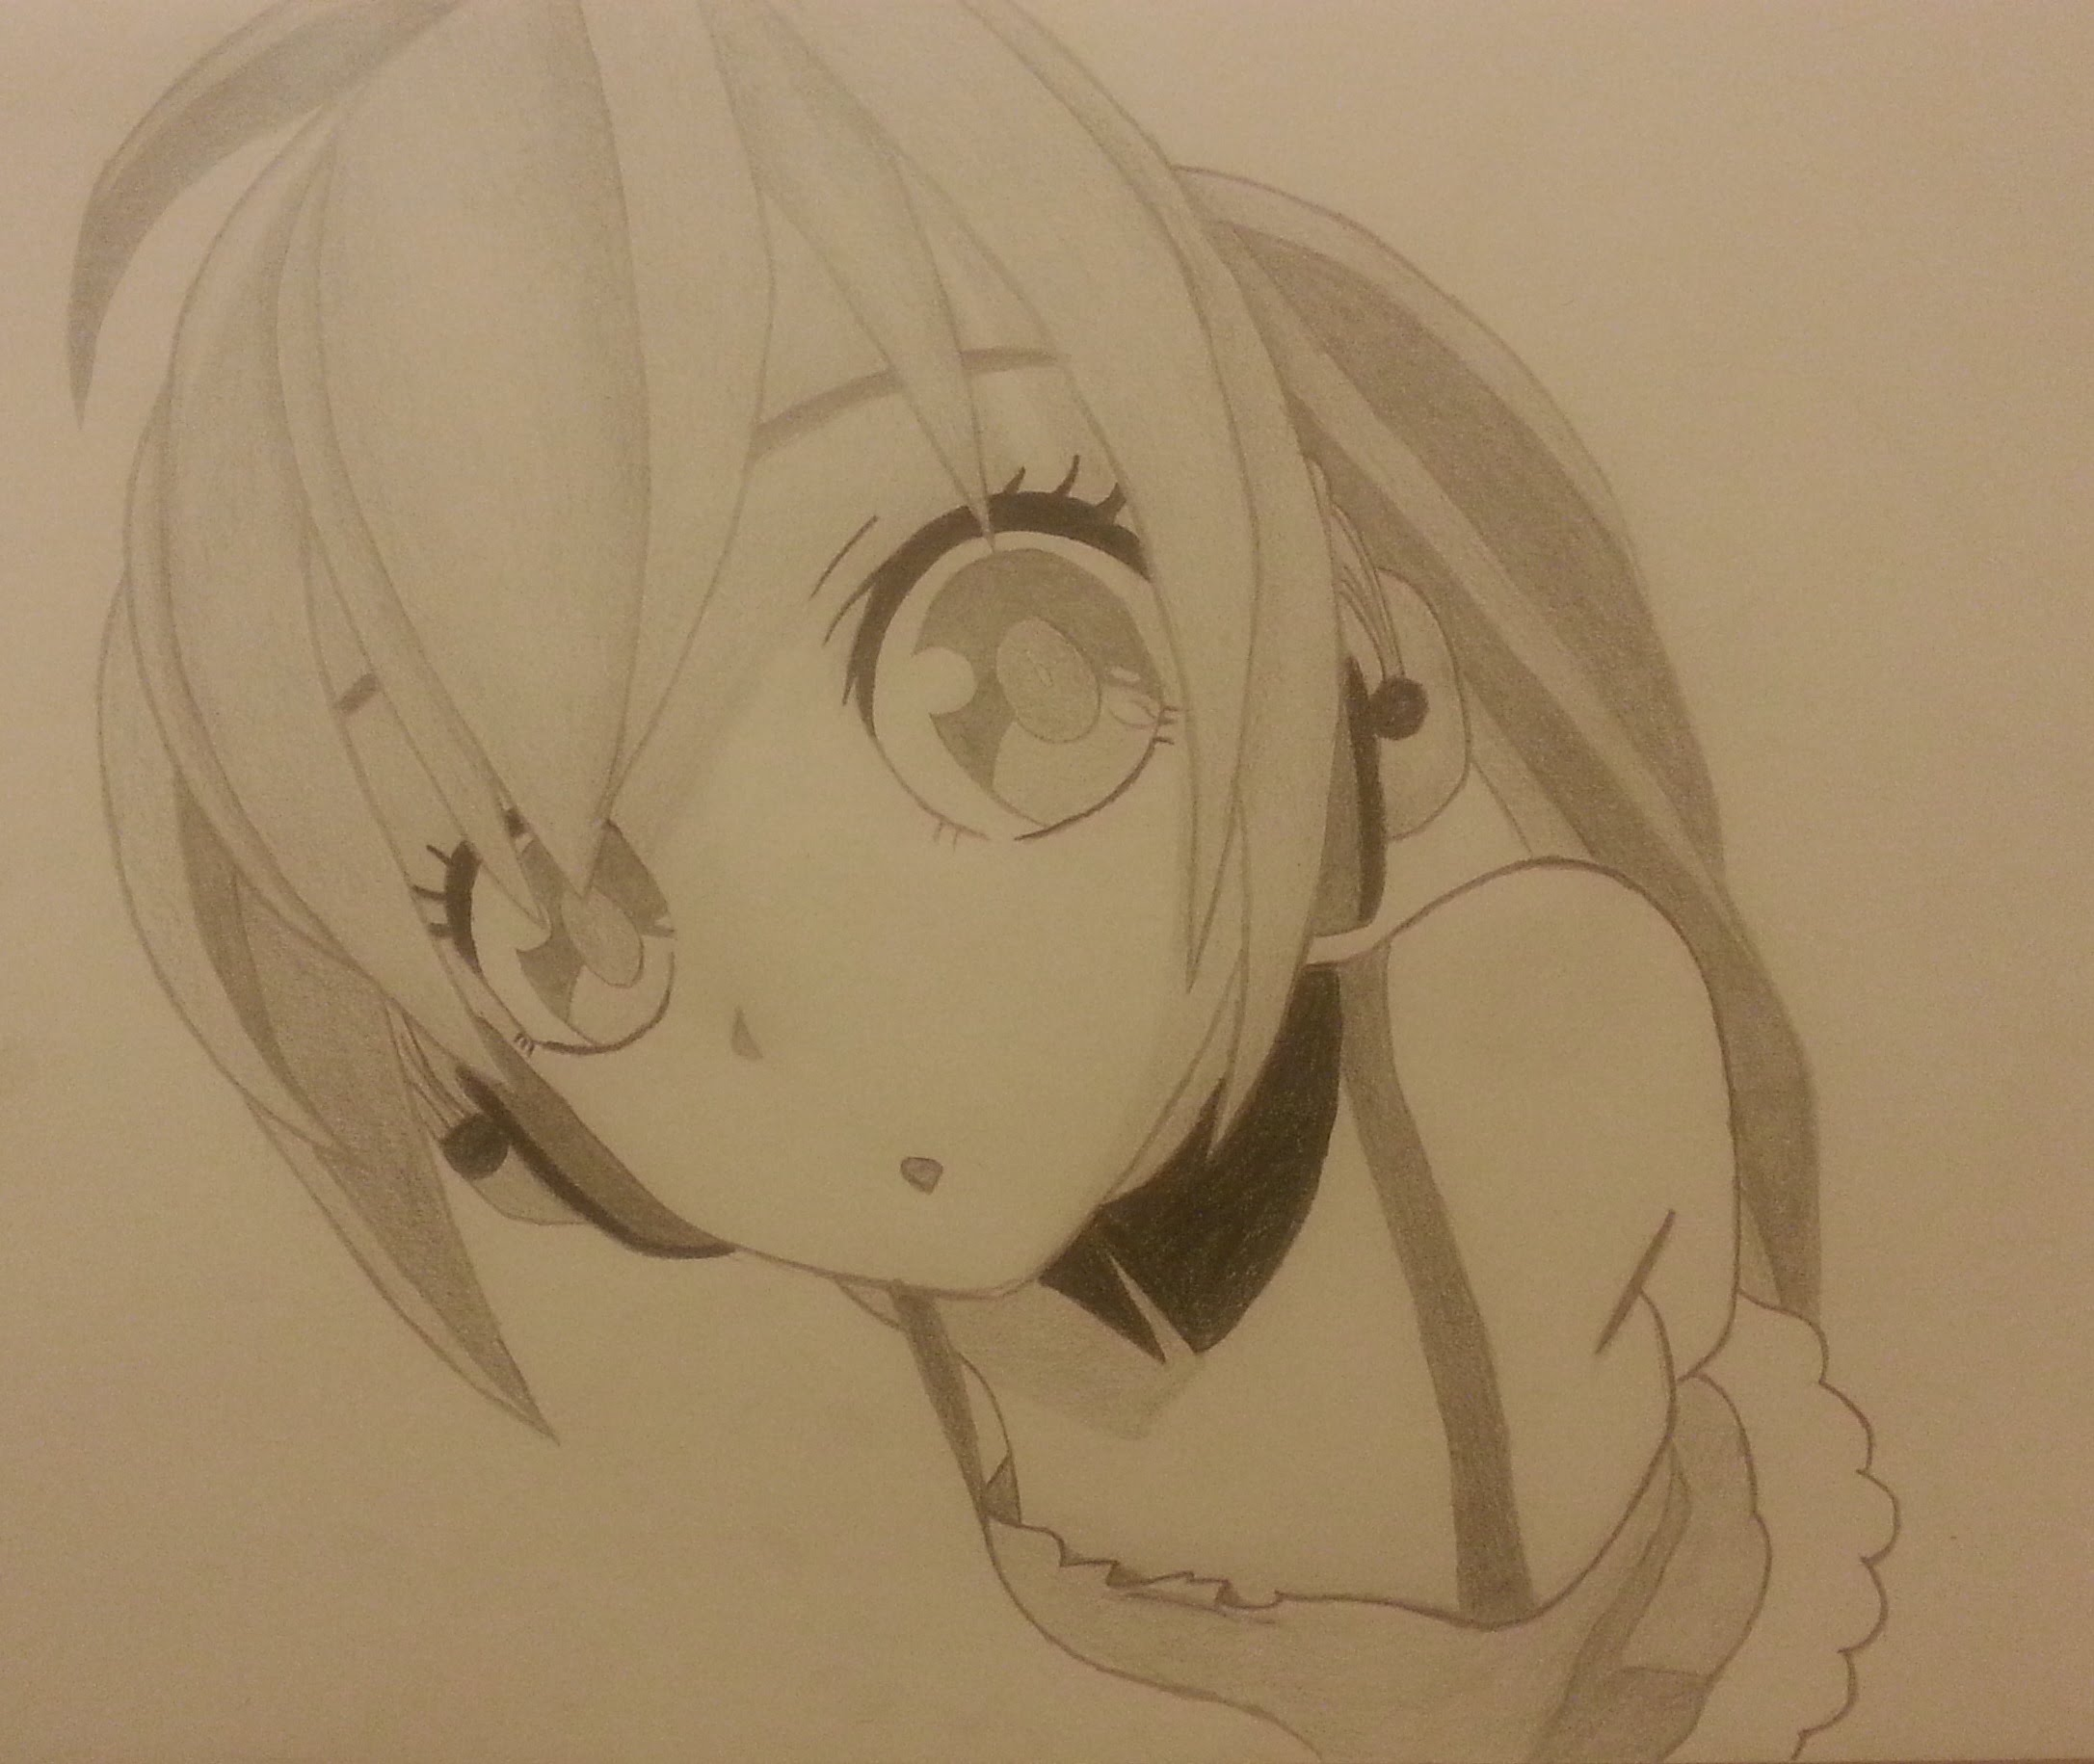 Anime Girl With Headphones Drawing Easy Anime Collection